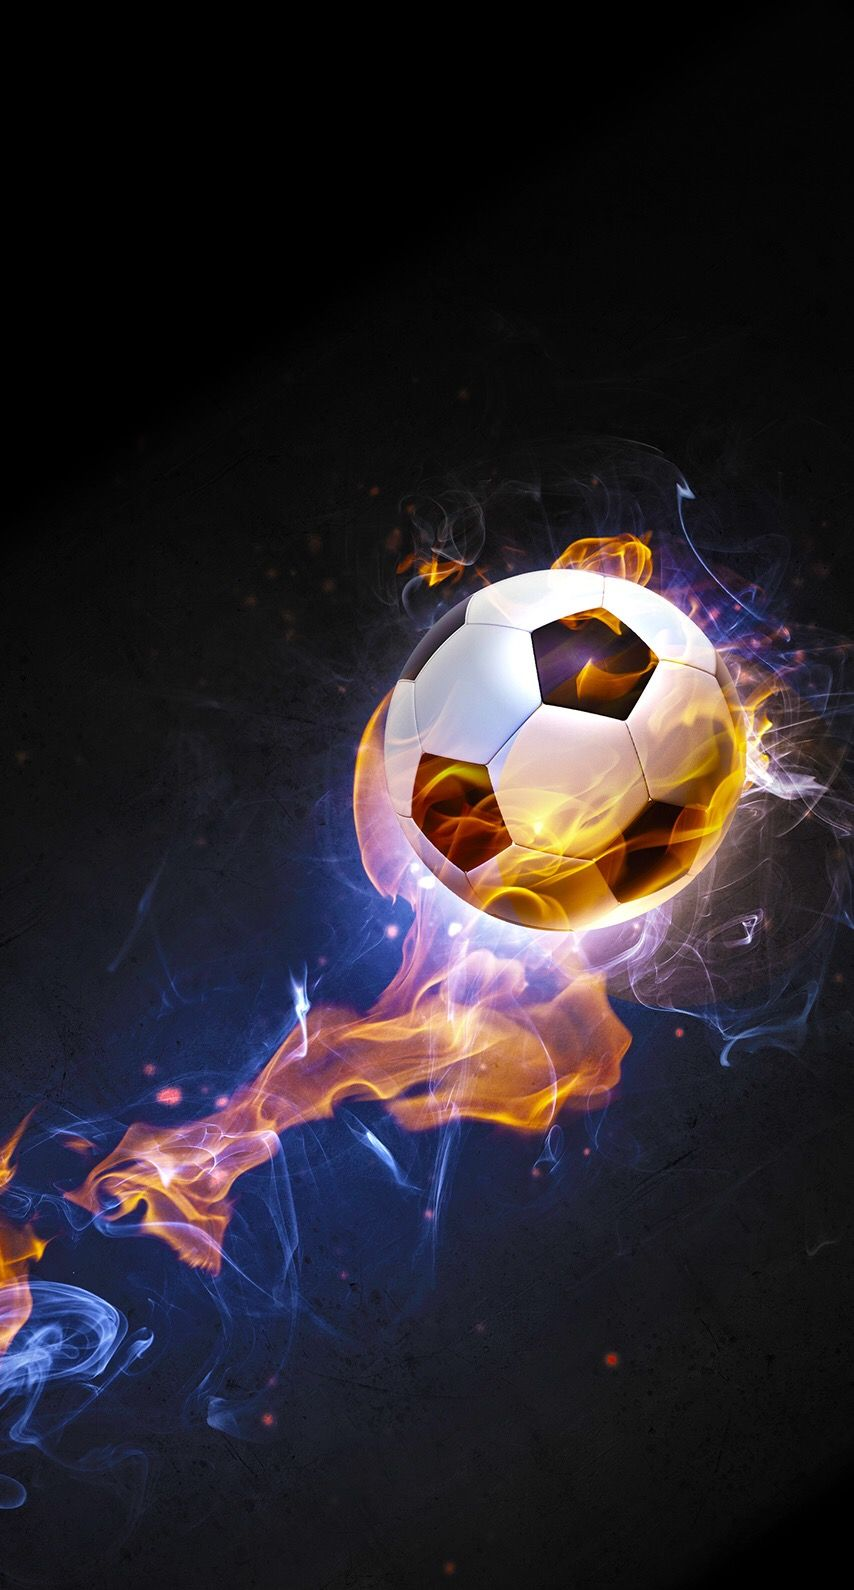 Hd Football Wallpapers Soccer Background Football Wallpaper Soccer Backgrounds Football Wallpaper Iphone